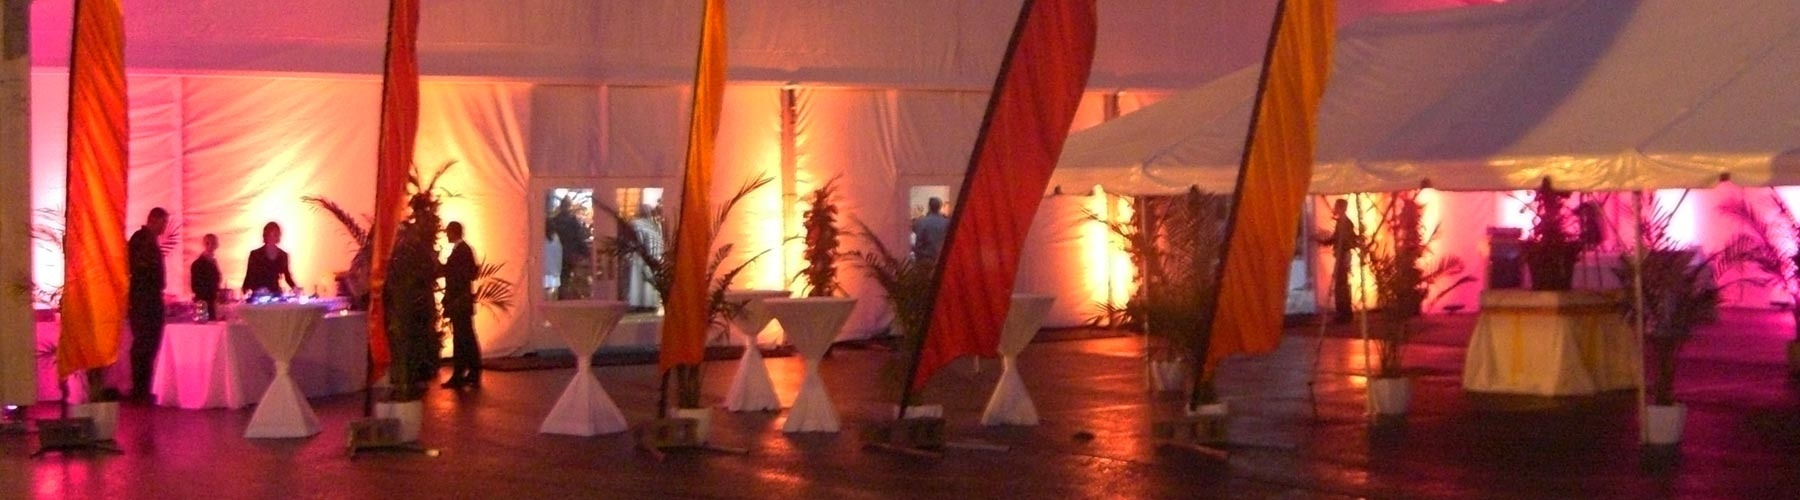 Clear Span Tent Rentals - American Pavilion image 1